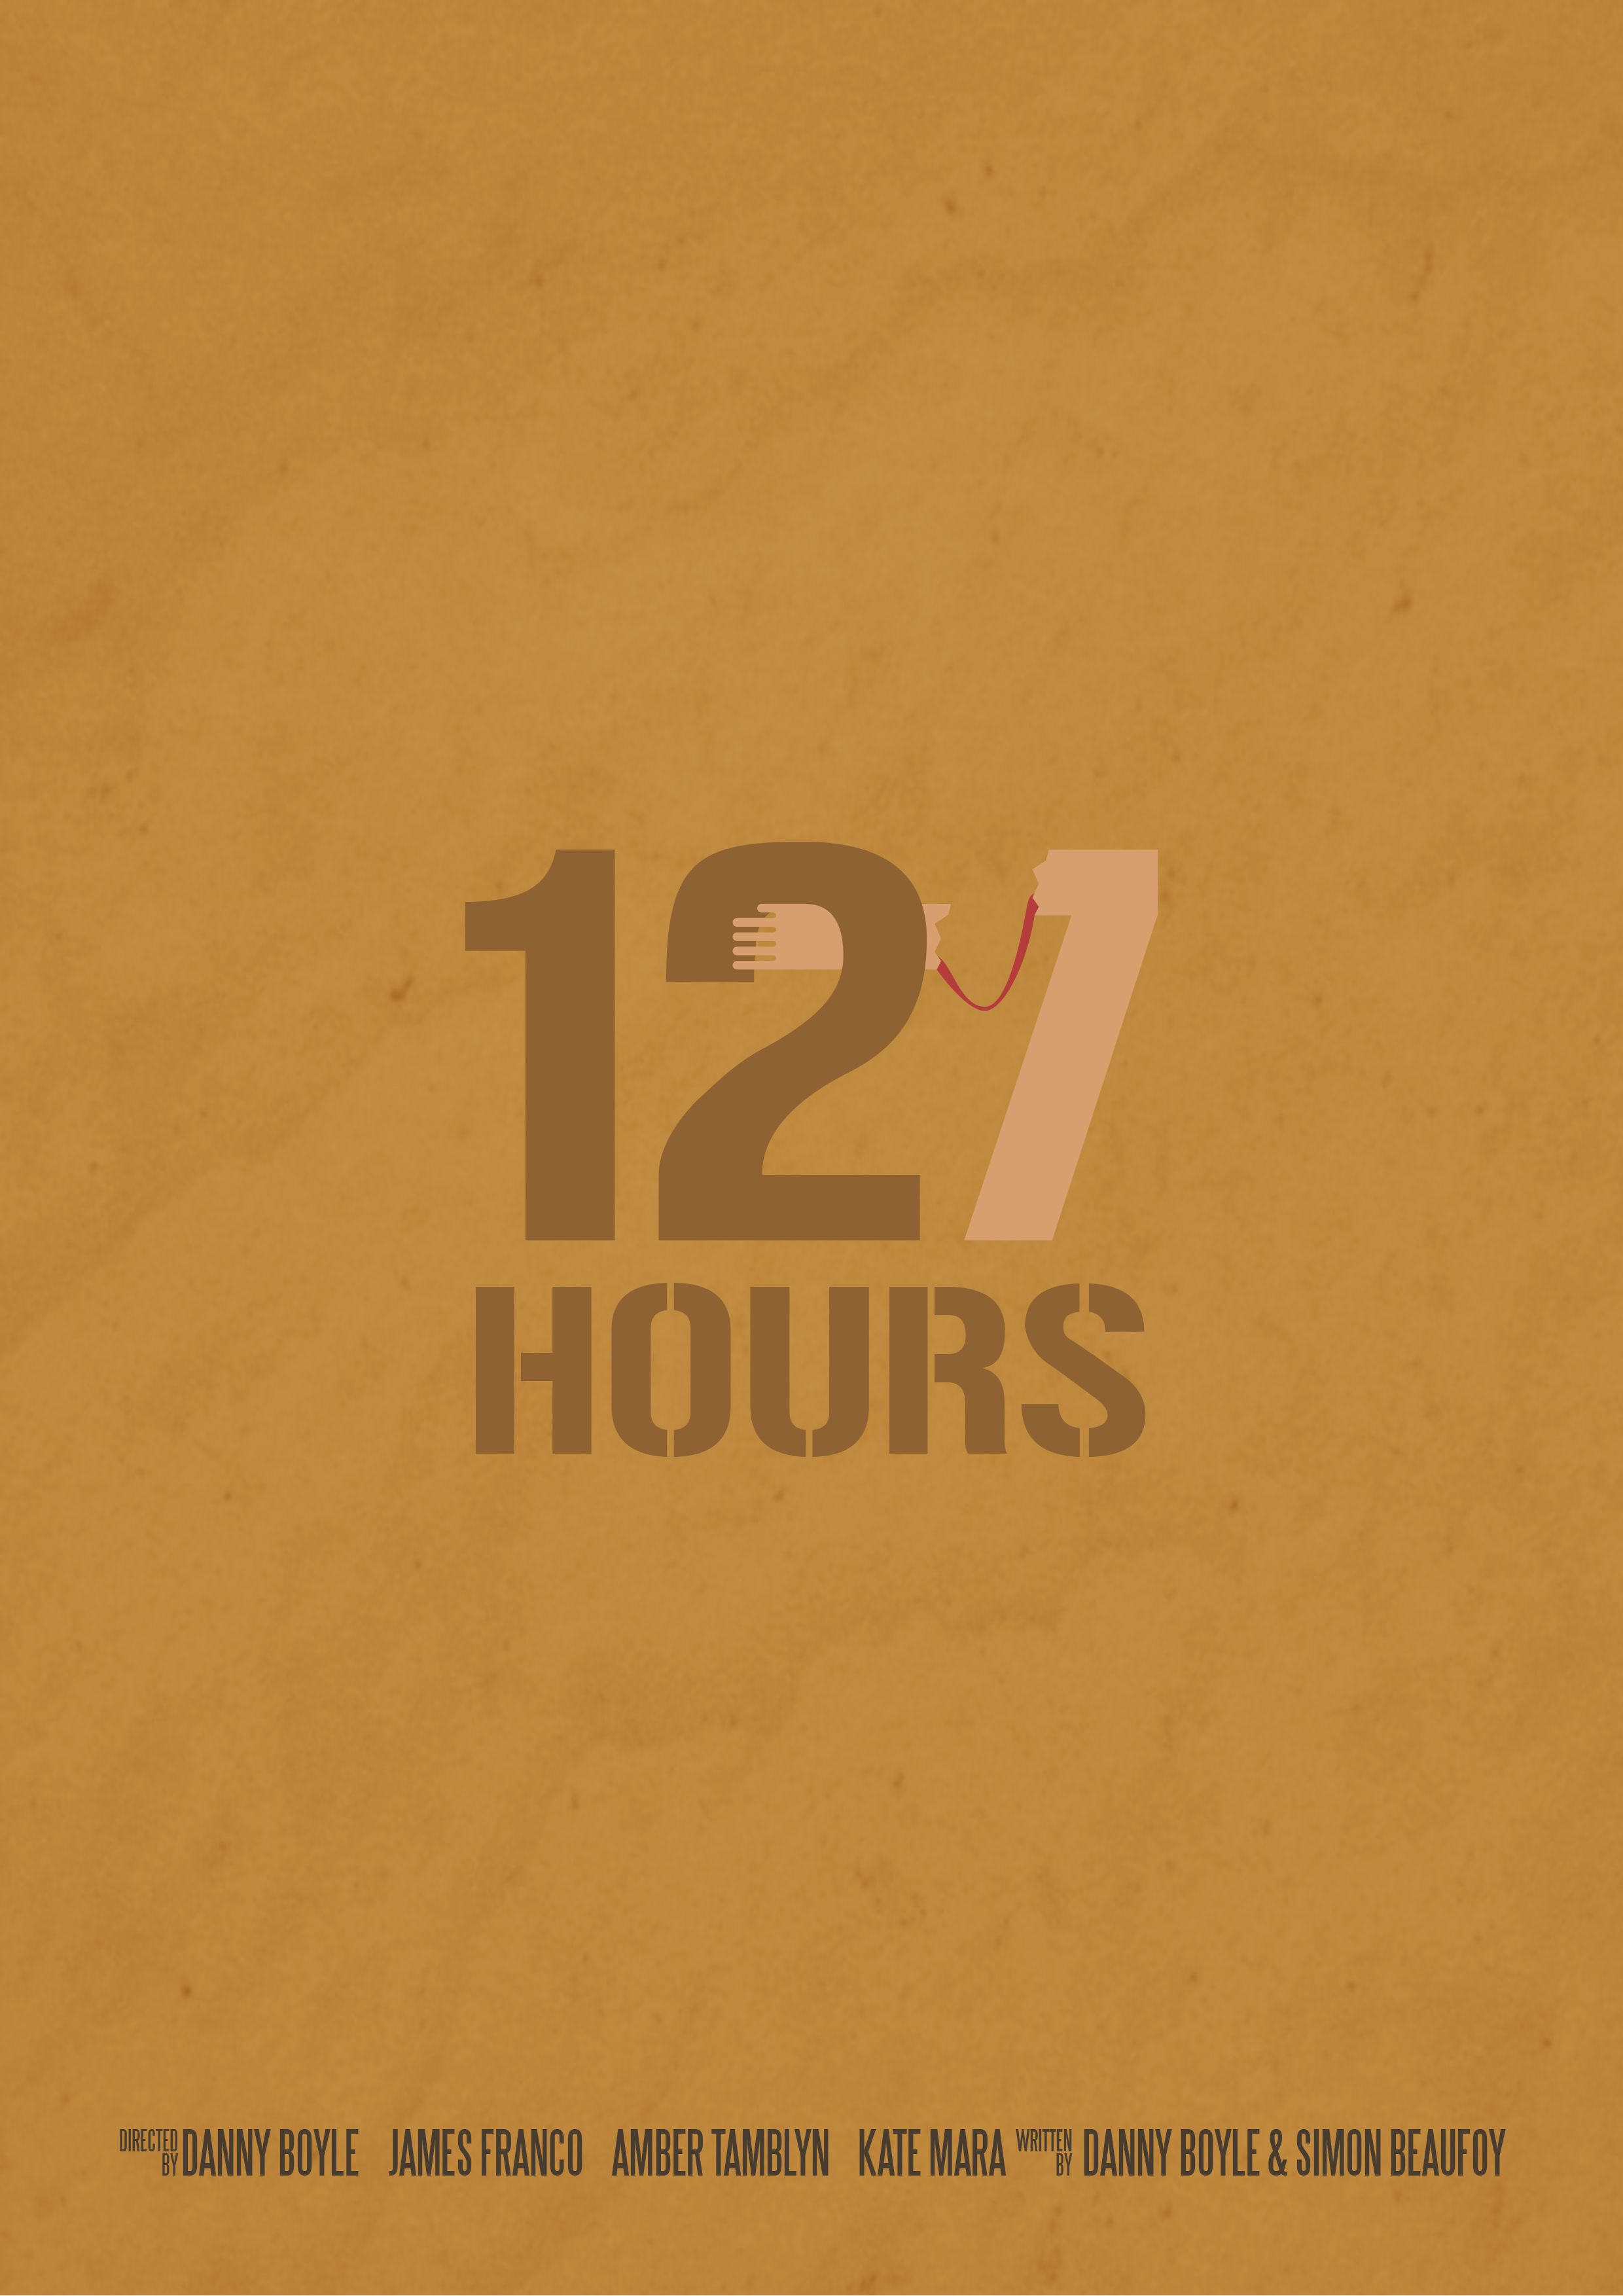 127 Hours. Minimal poster by Jose Sancho.